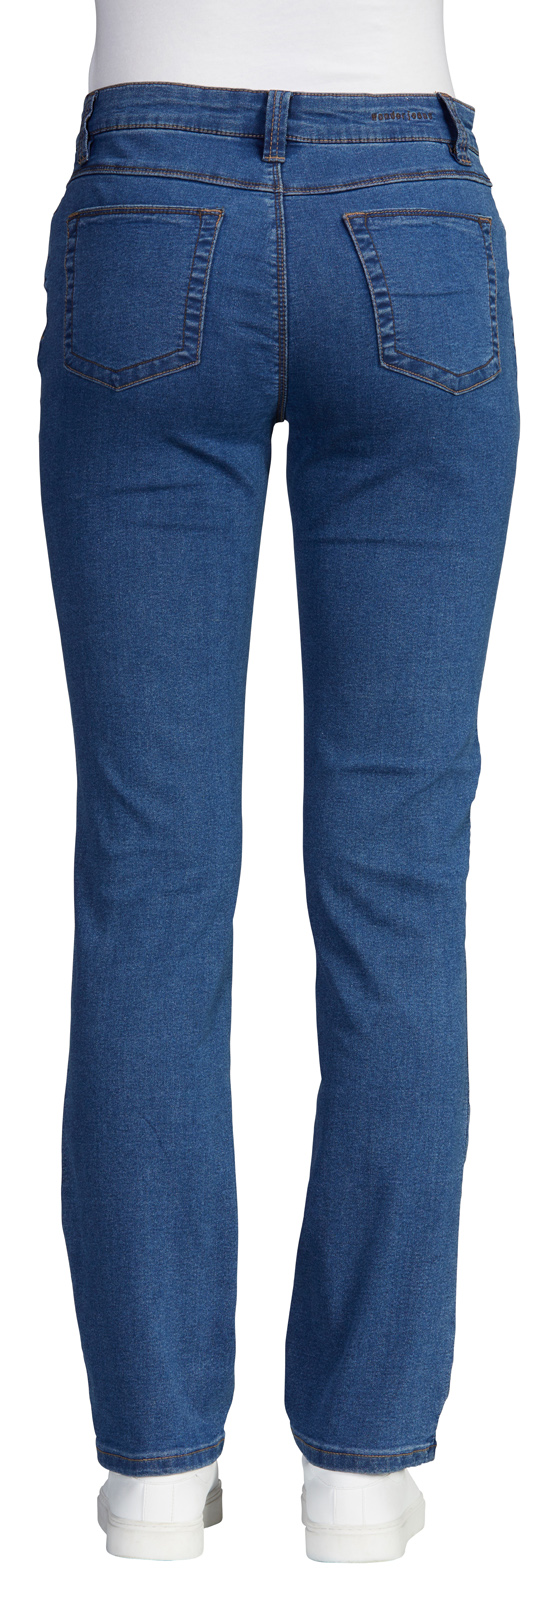 SCHMALE SHAPING-JEANS L